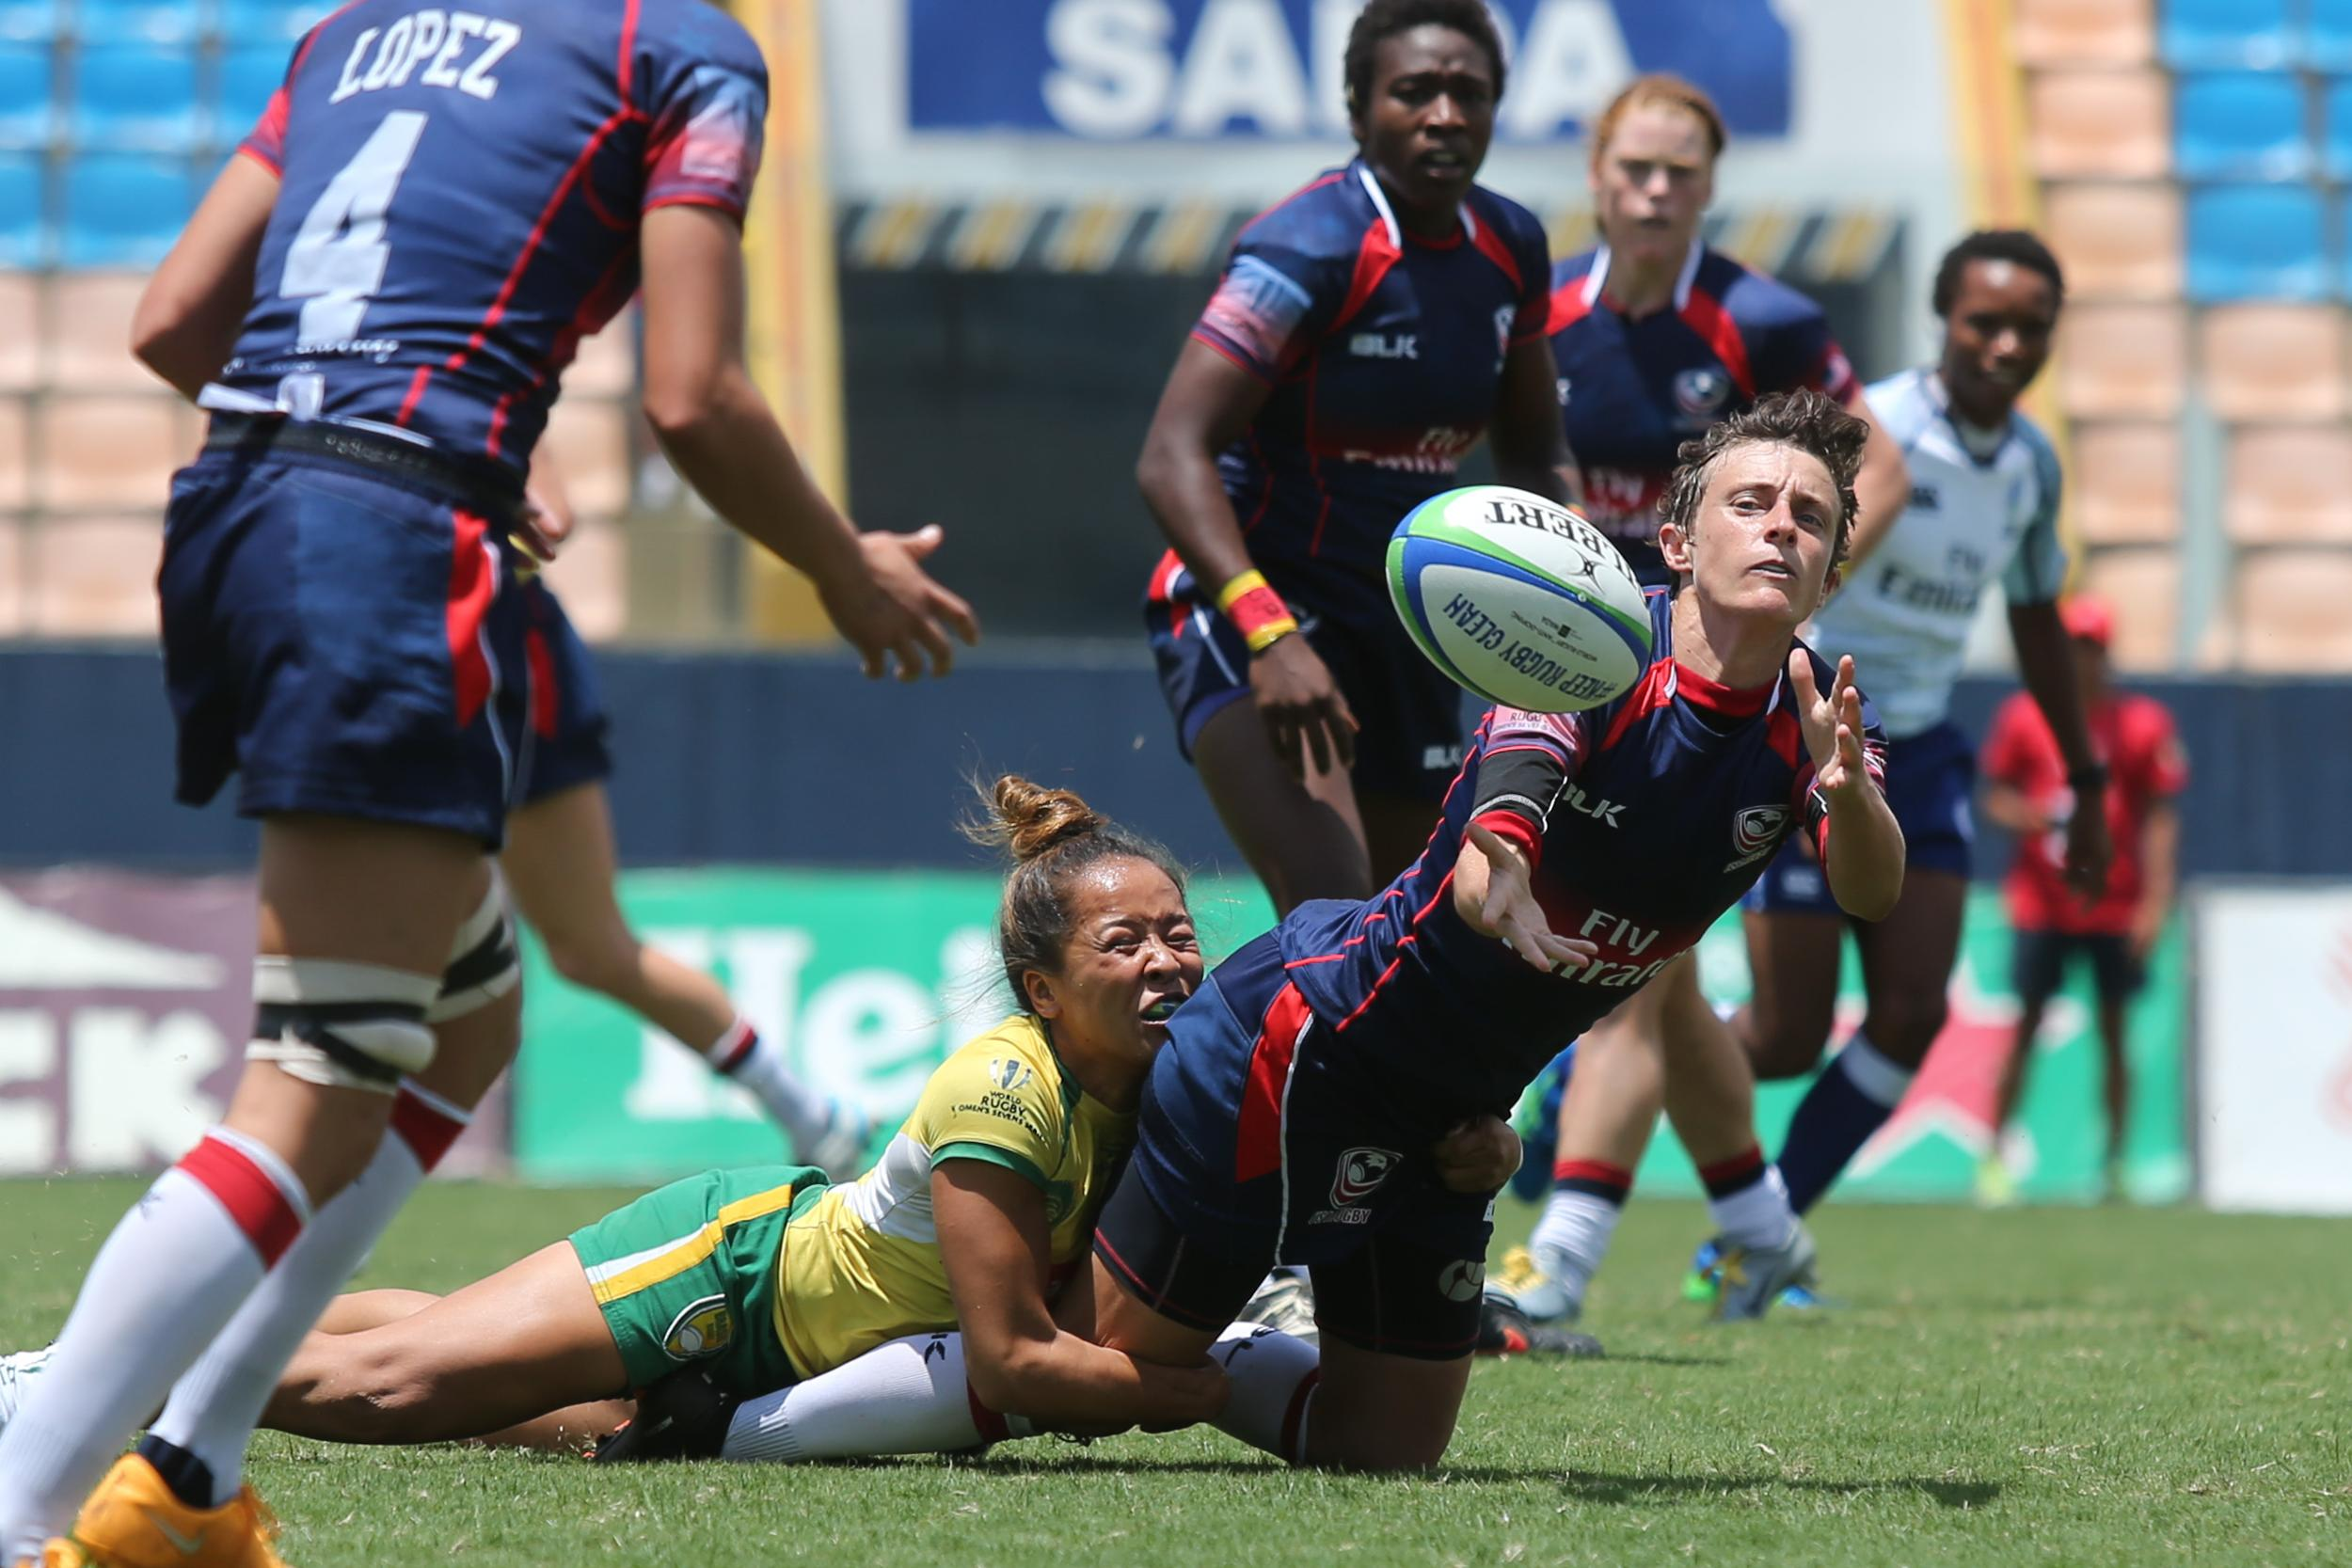 This Is American Rugby: Women Eagles 7s Selected For Atlanta